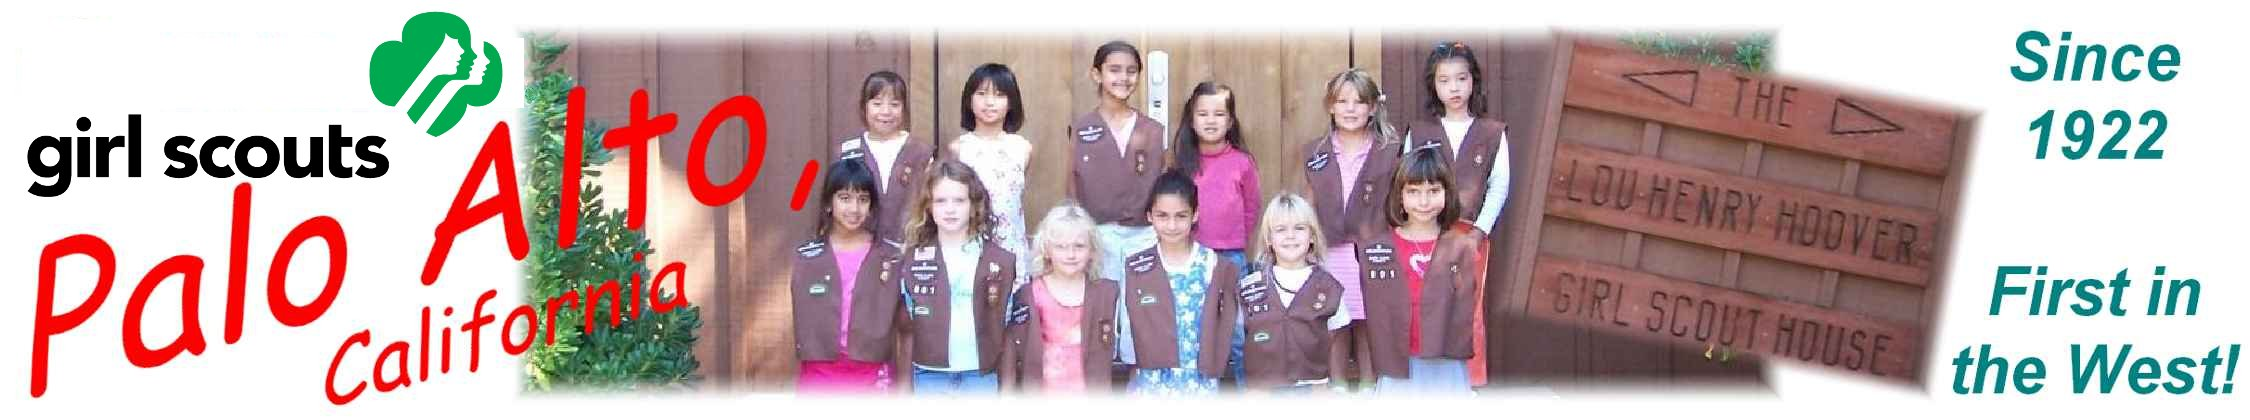 Girl Scouts of Palo Alto Home Page